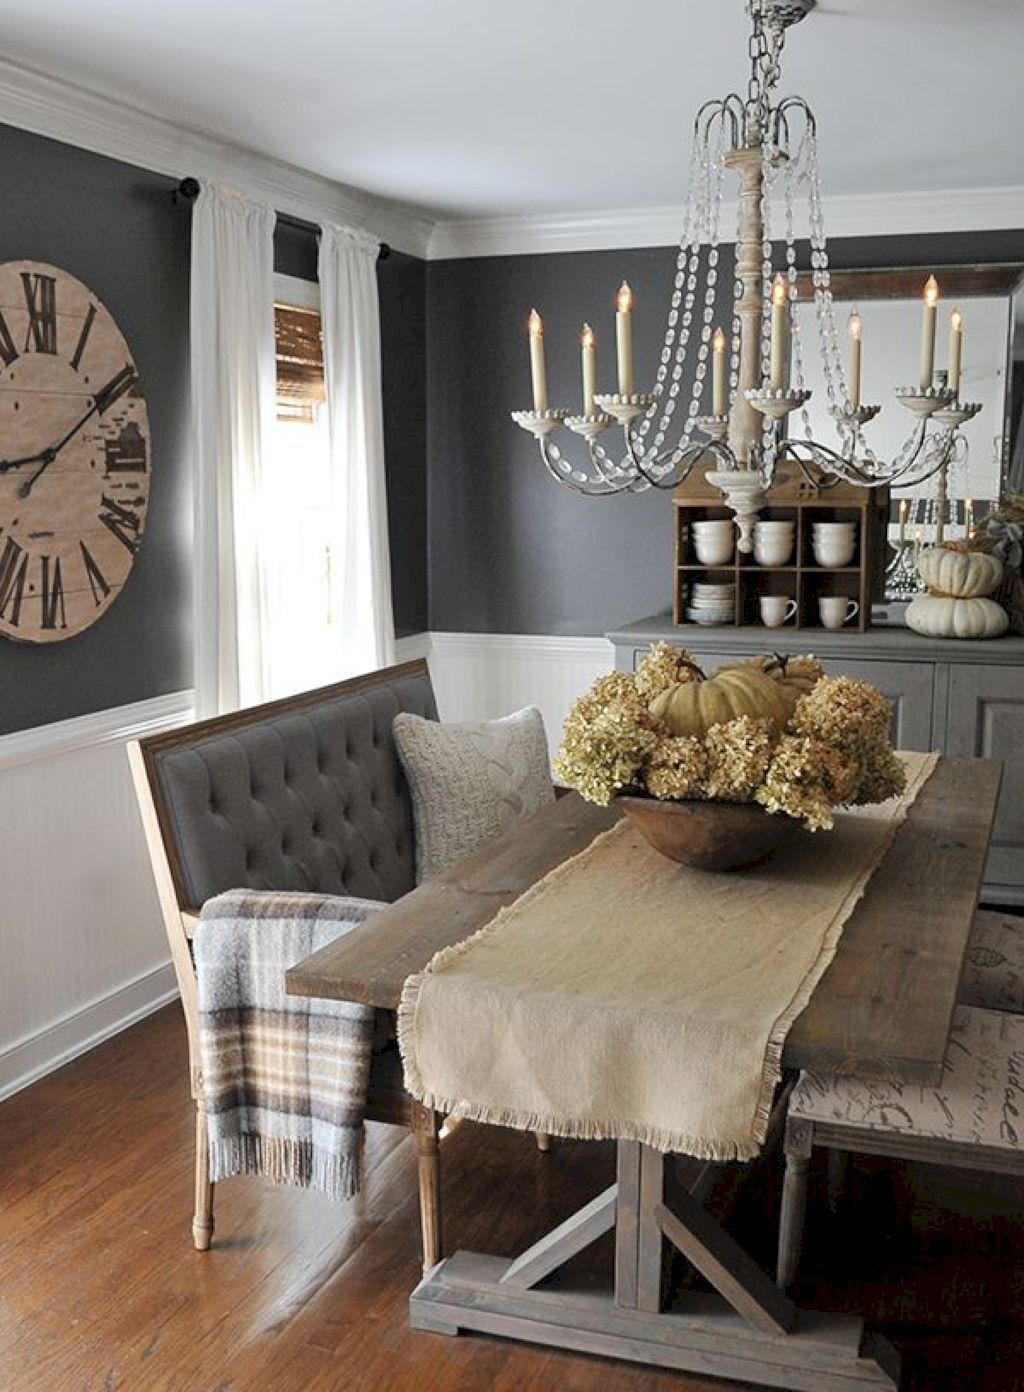 Dining Room Remodel Delectable 40 Comfy Modern Farmhouse Dining Room Remodel Ideas  Modern Design Ideas